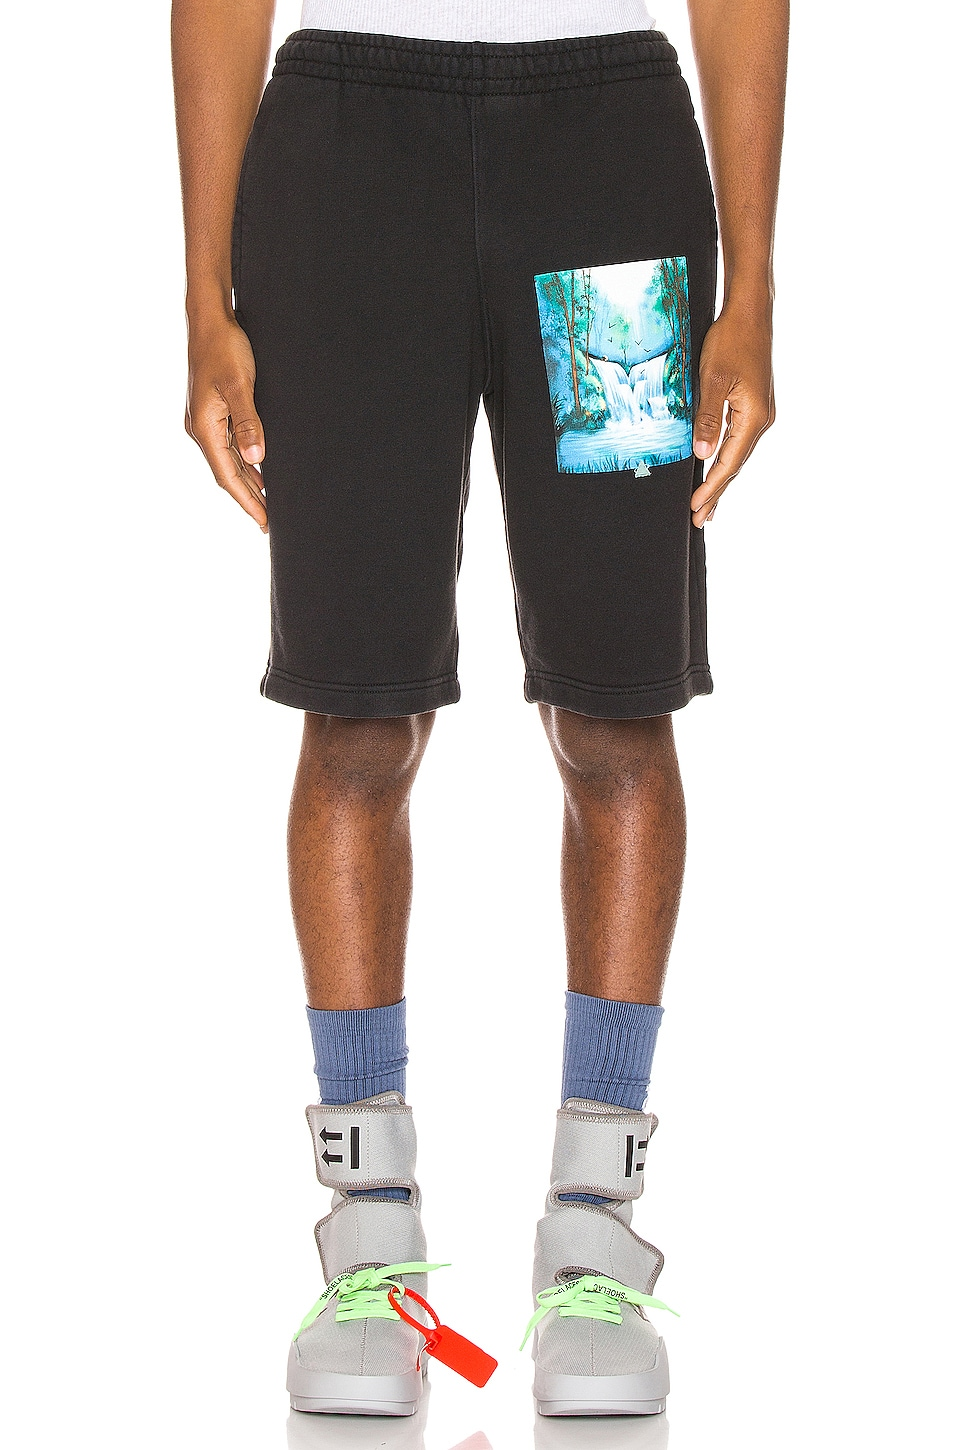 OFF-WHITE Waterfall Sweatshorts in Black Multi